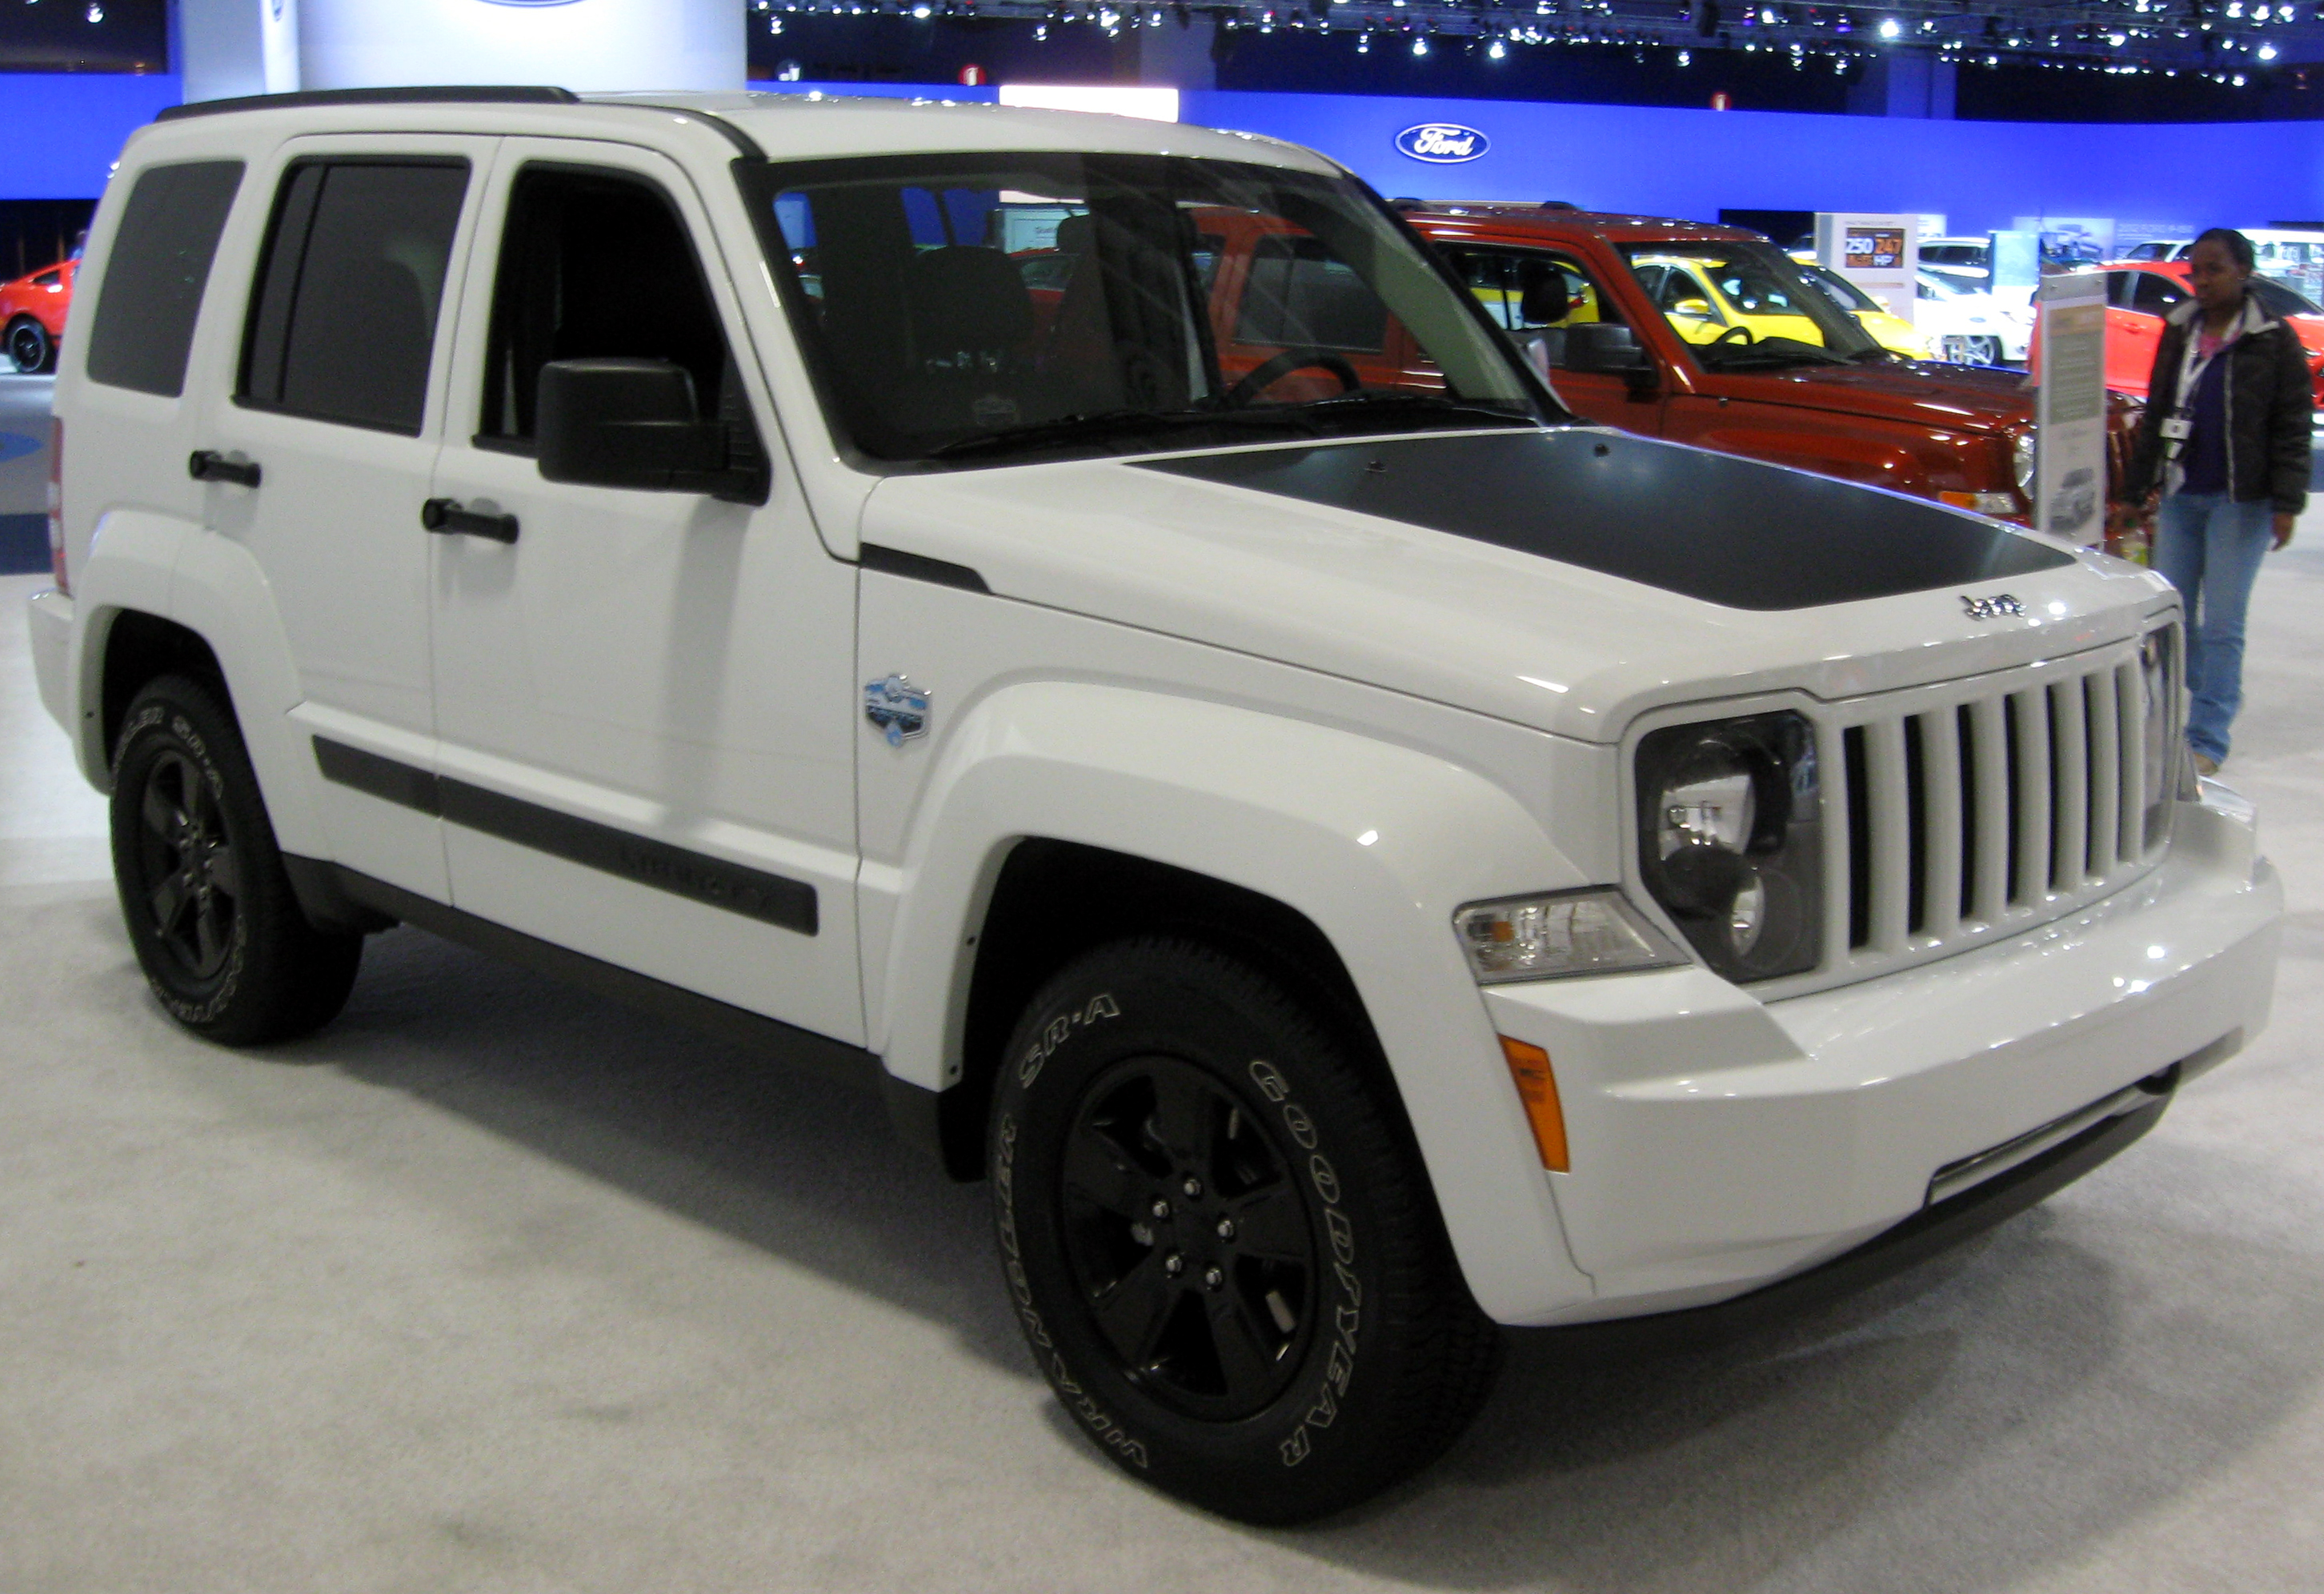 2012 jeep liberty sport 2wd vin number search  autodetective